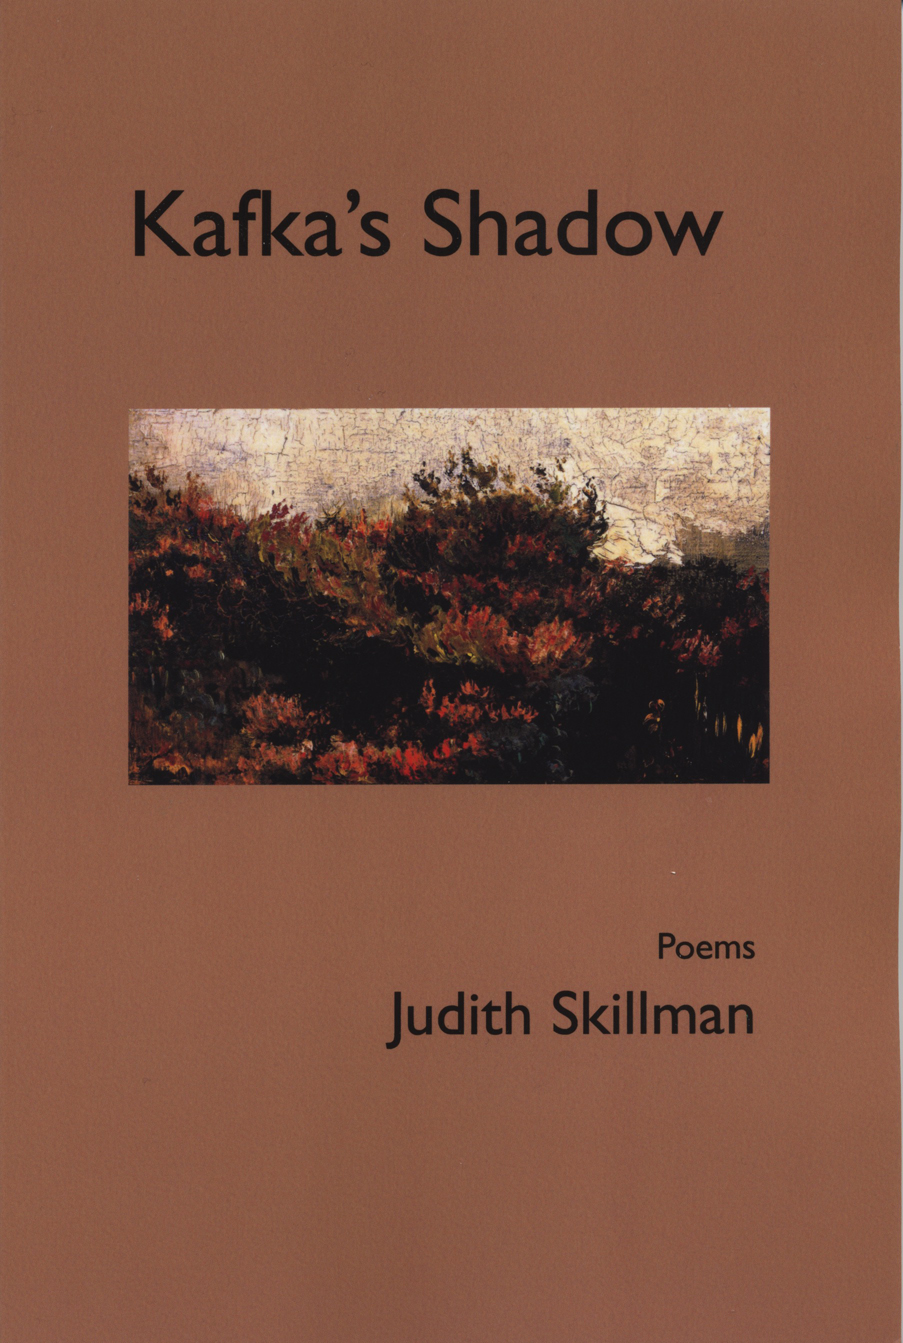 Kafka's Shadow